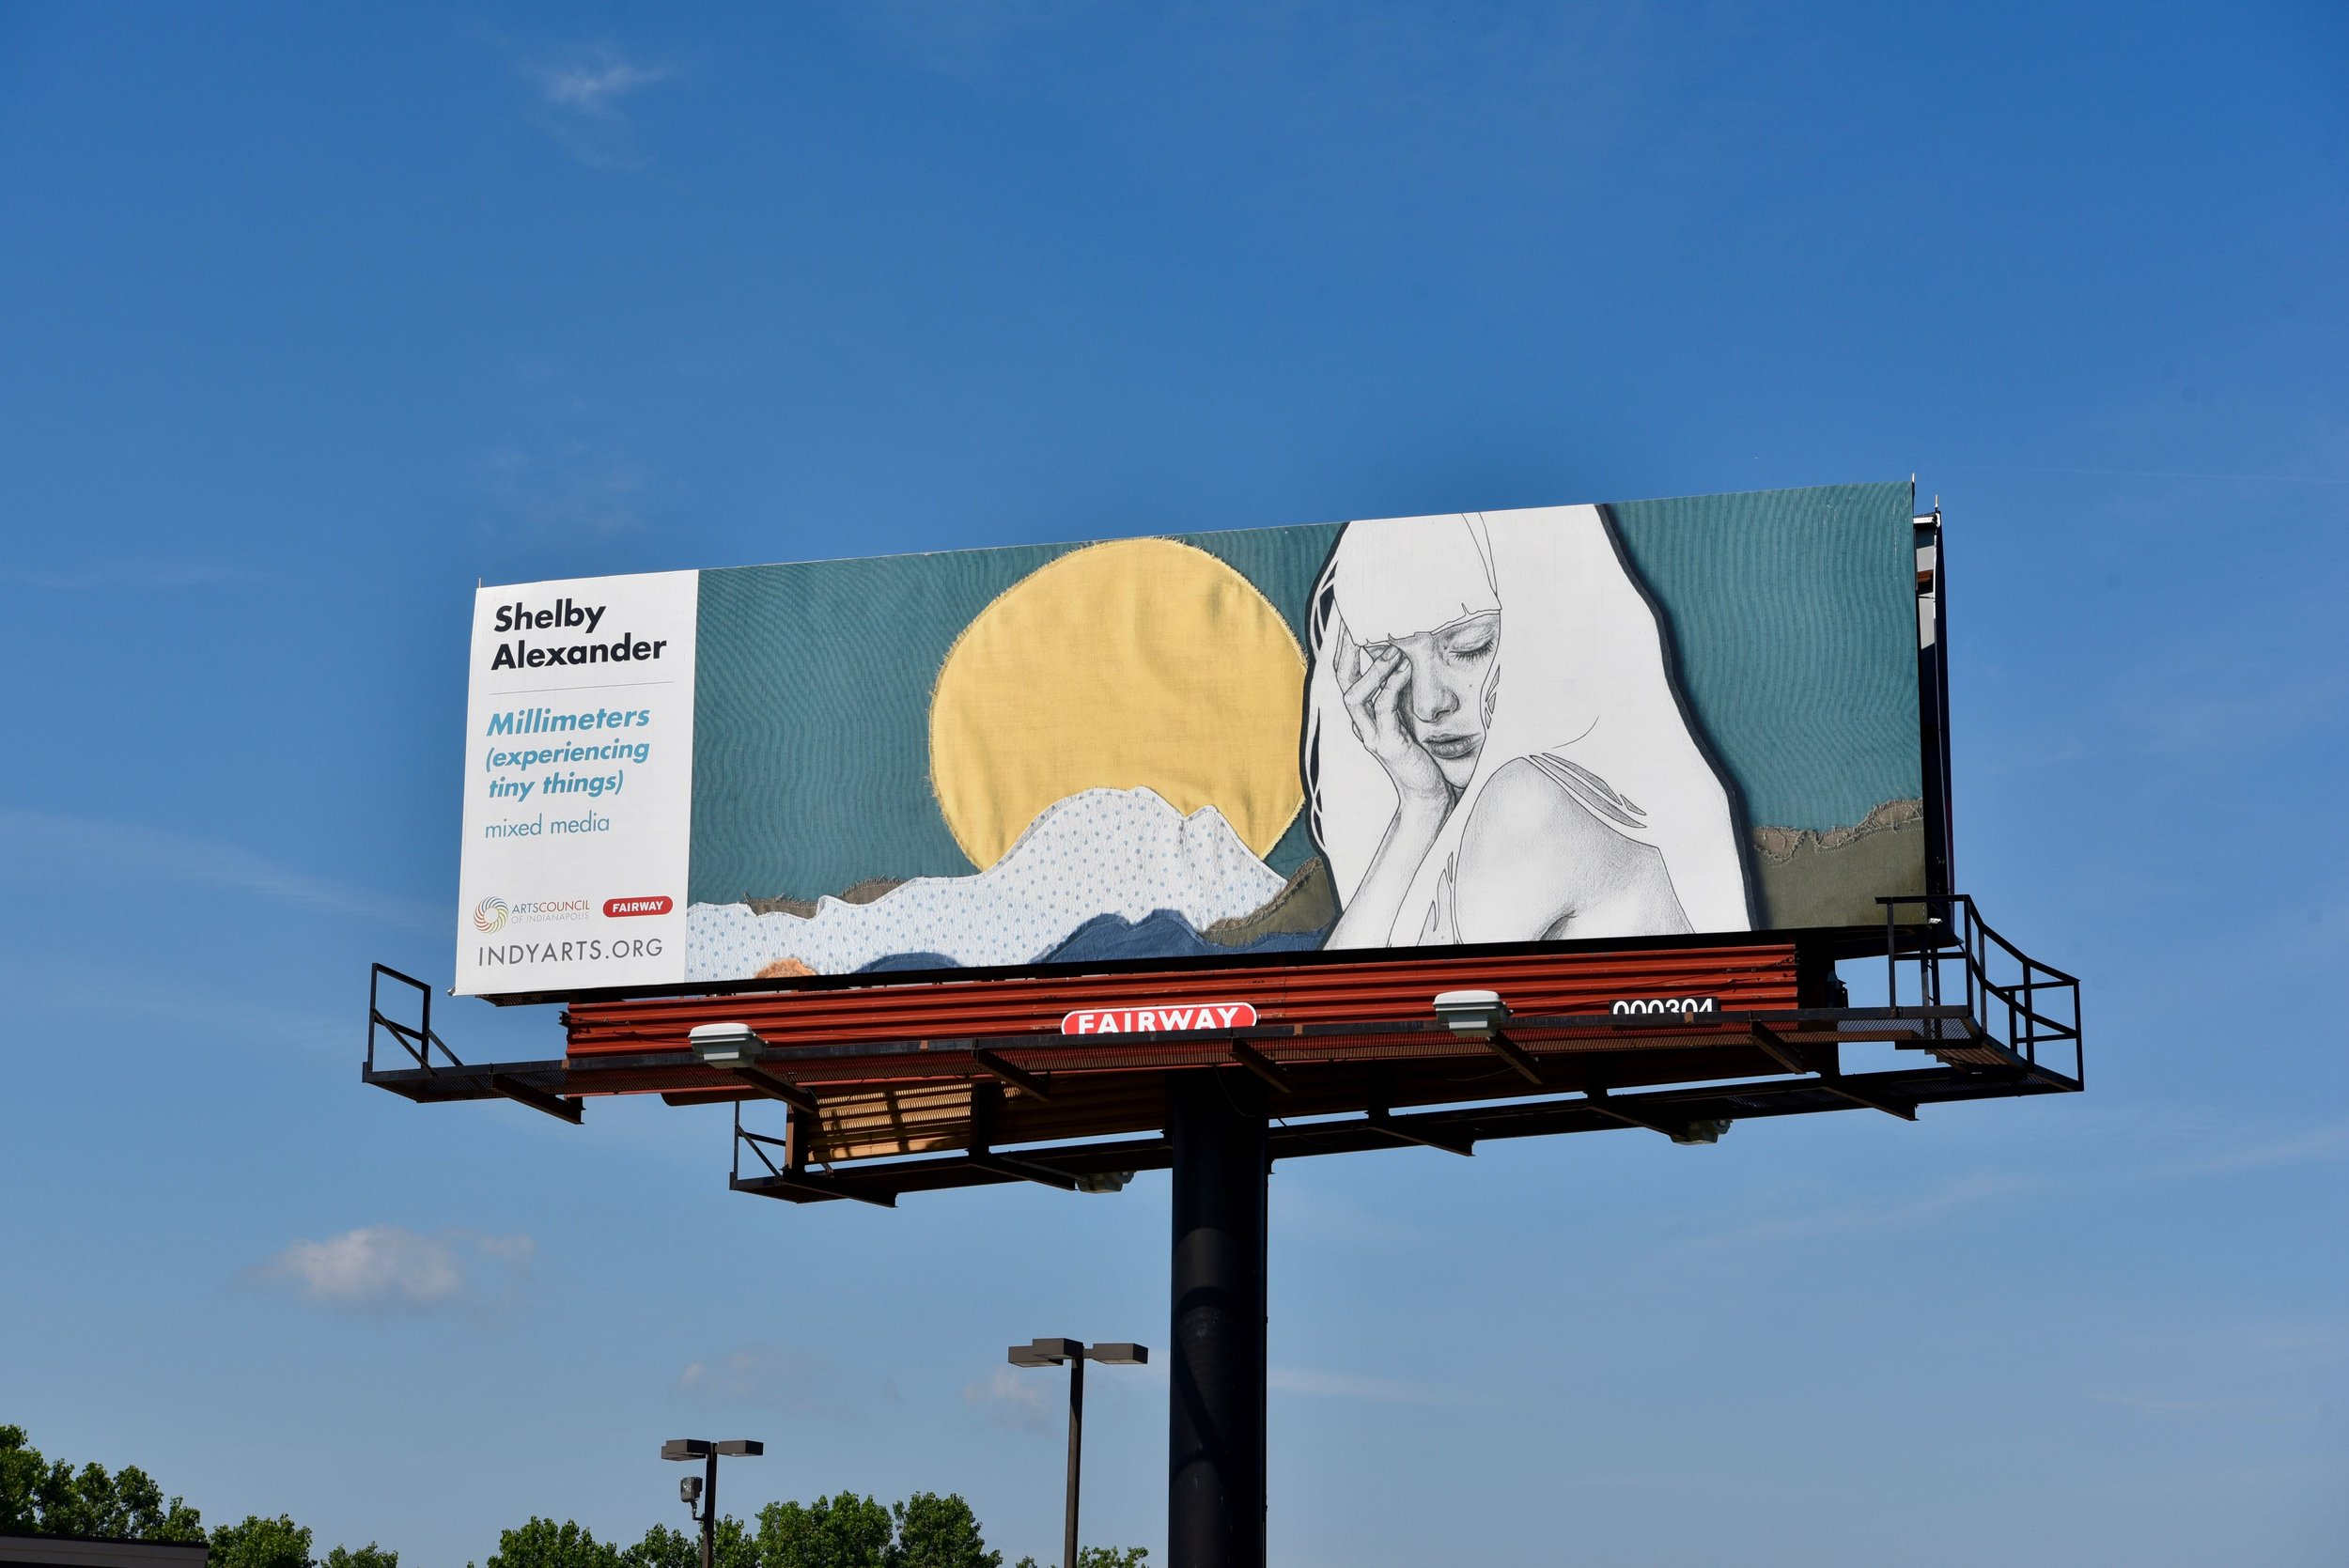 Billboard_Photo-Edited-Small.jpg